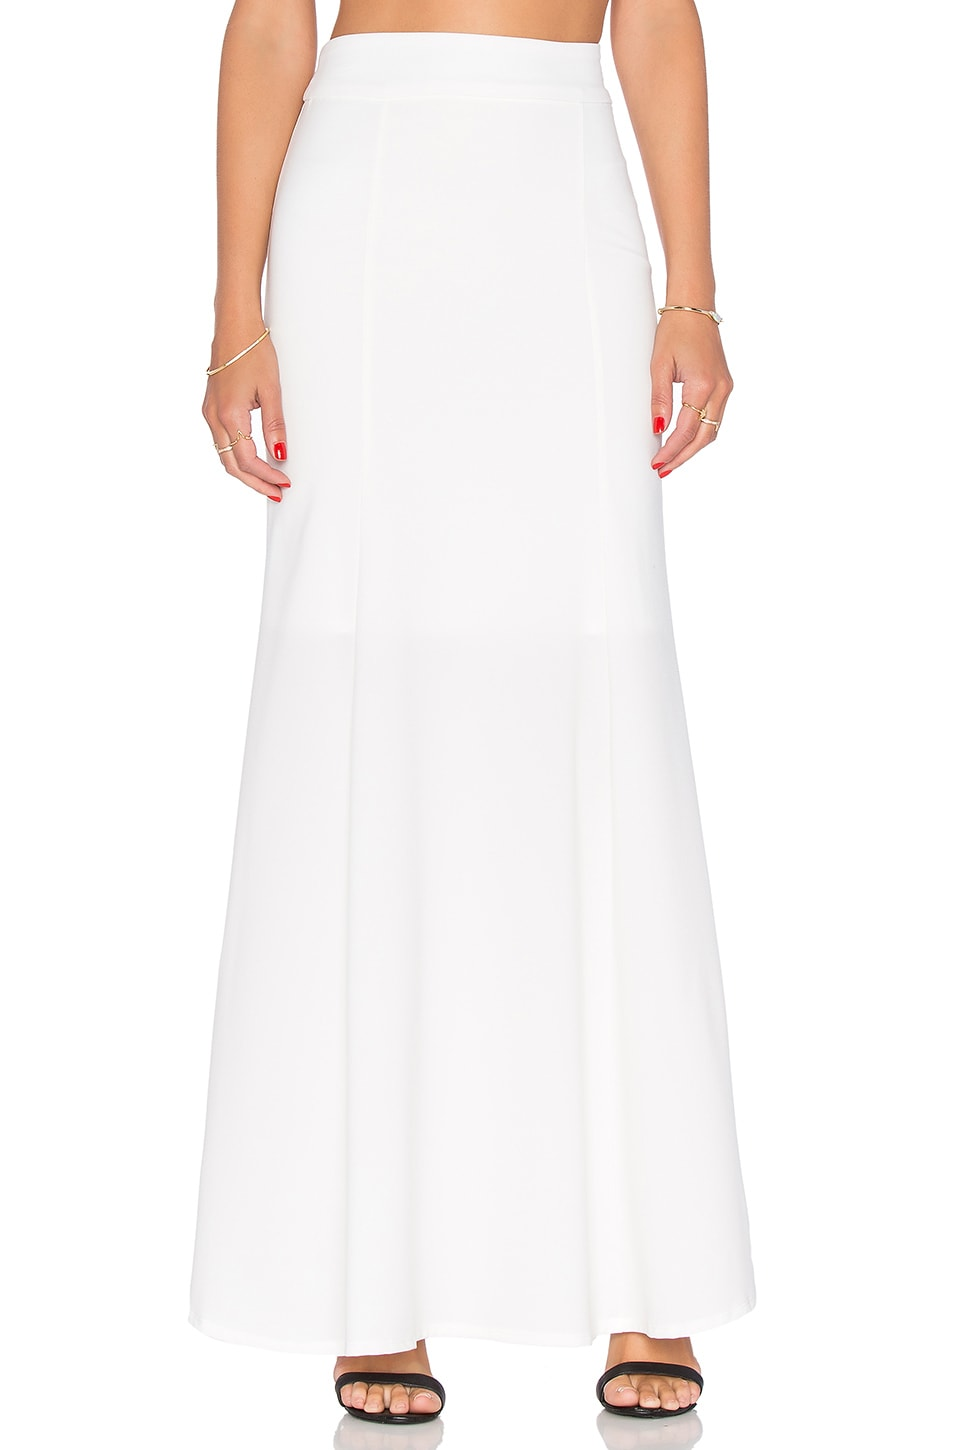 krisa Fit & Flare Maxi Skirt in Ivory